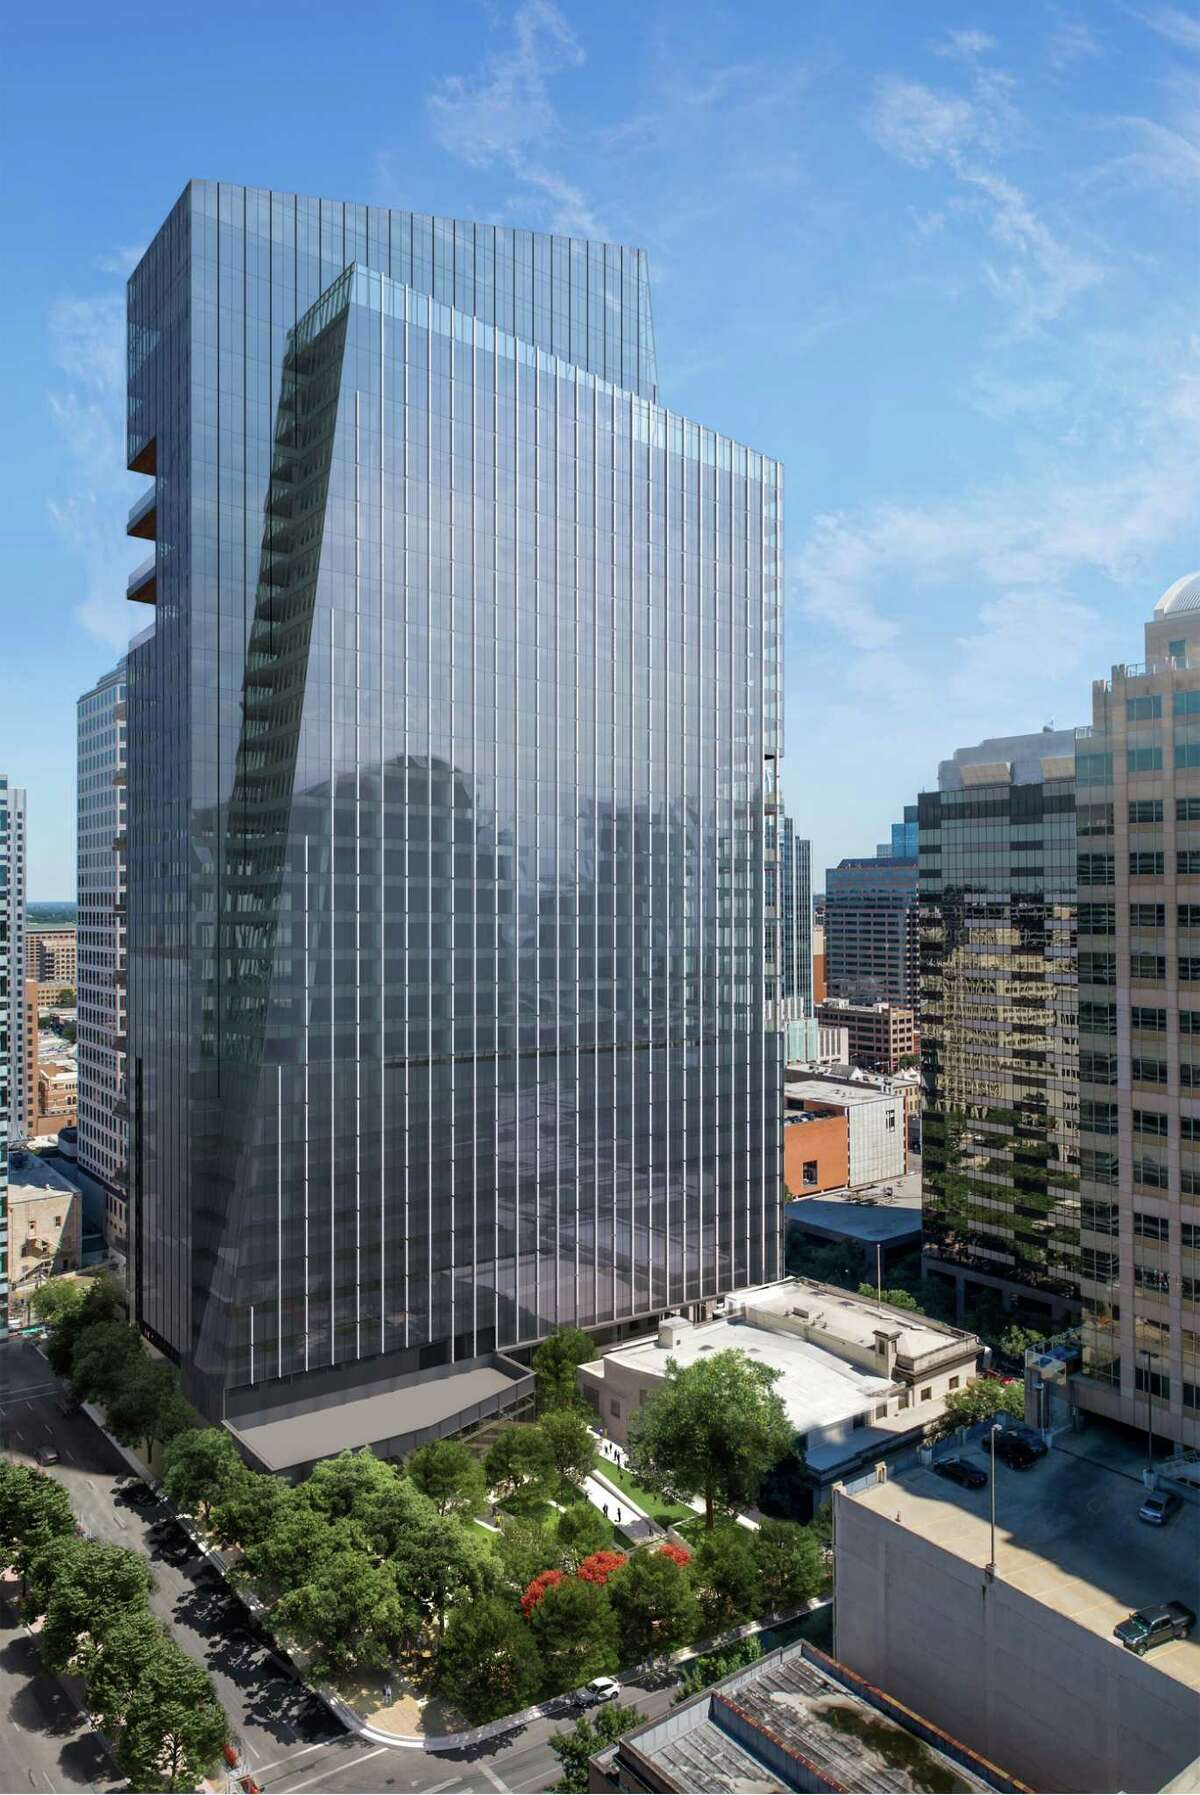 Job-search firm Indeed plans to take 10 floors in a planned office tower in the Block 71 complex in downtown Austin, Texas.